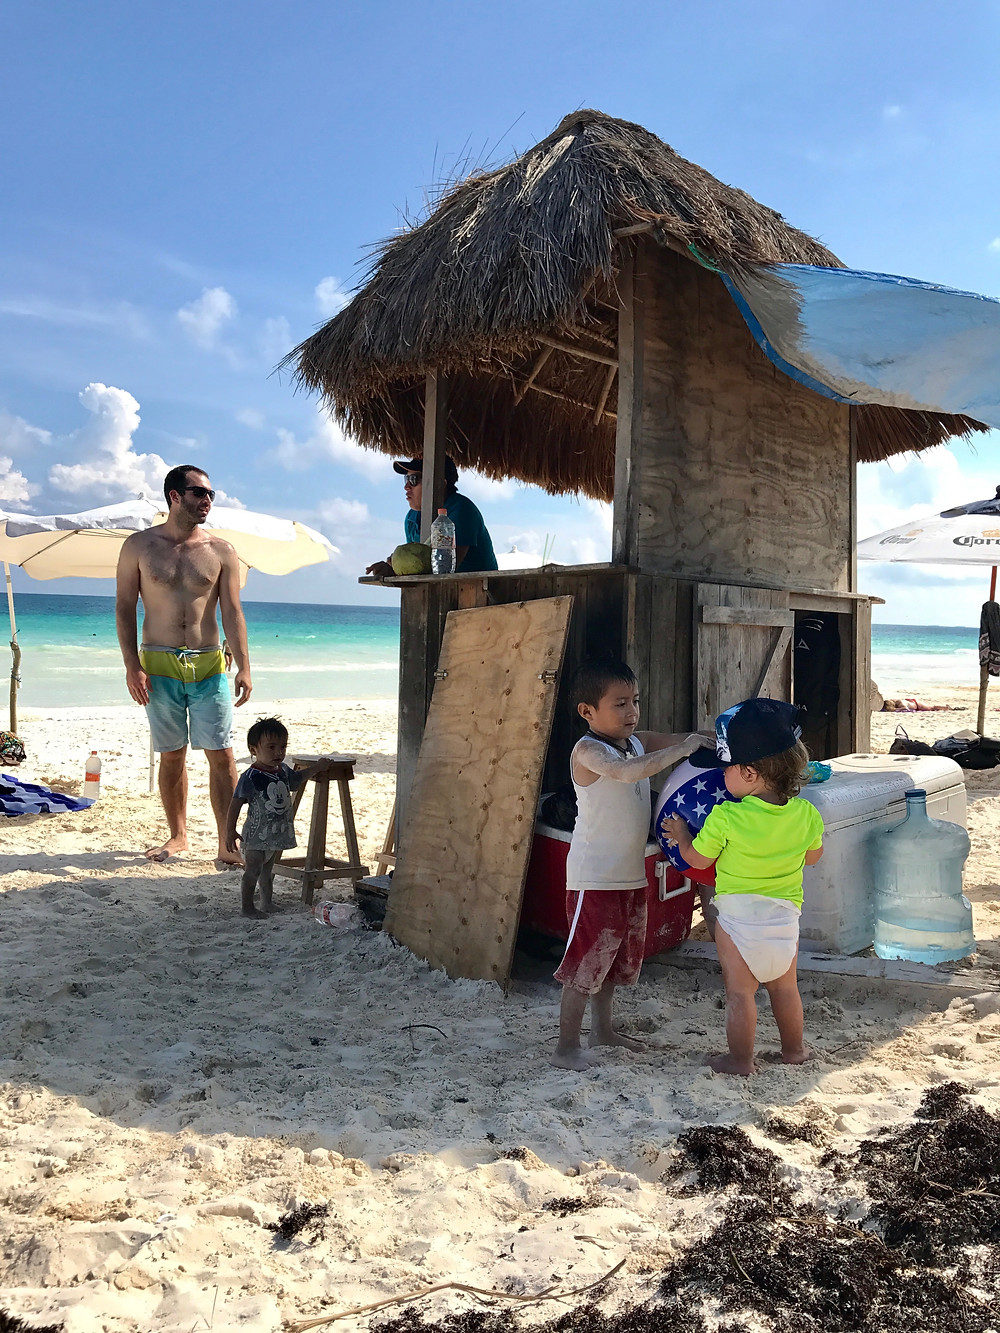 Babies on the beach in Tulum playing